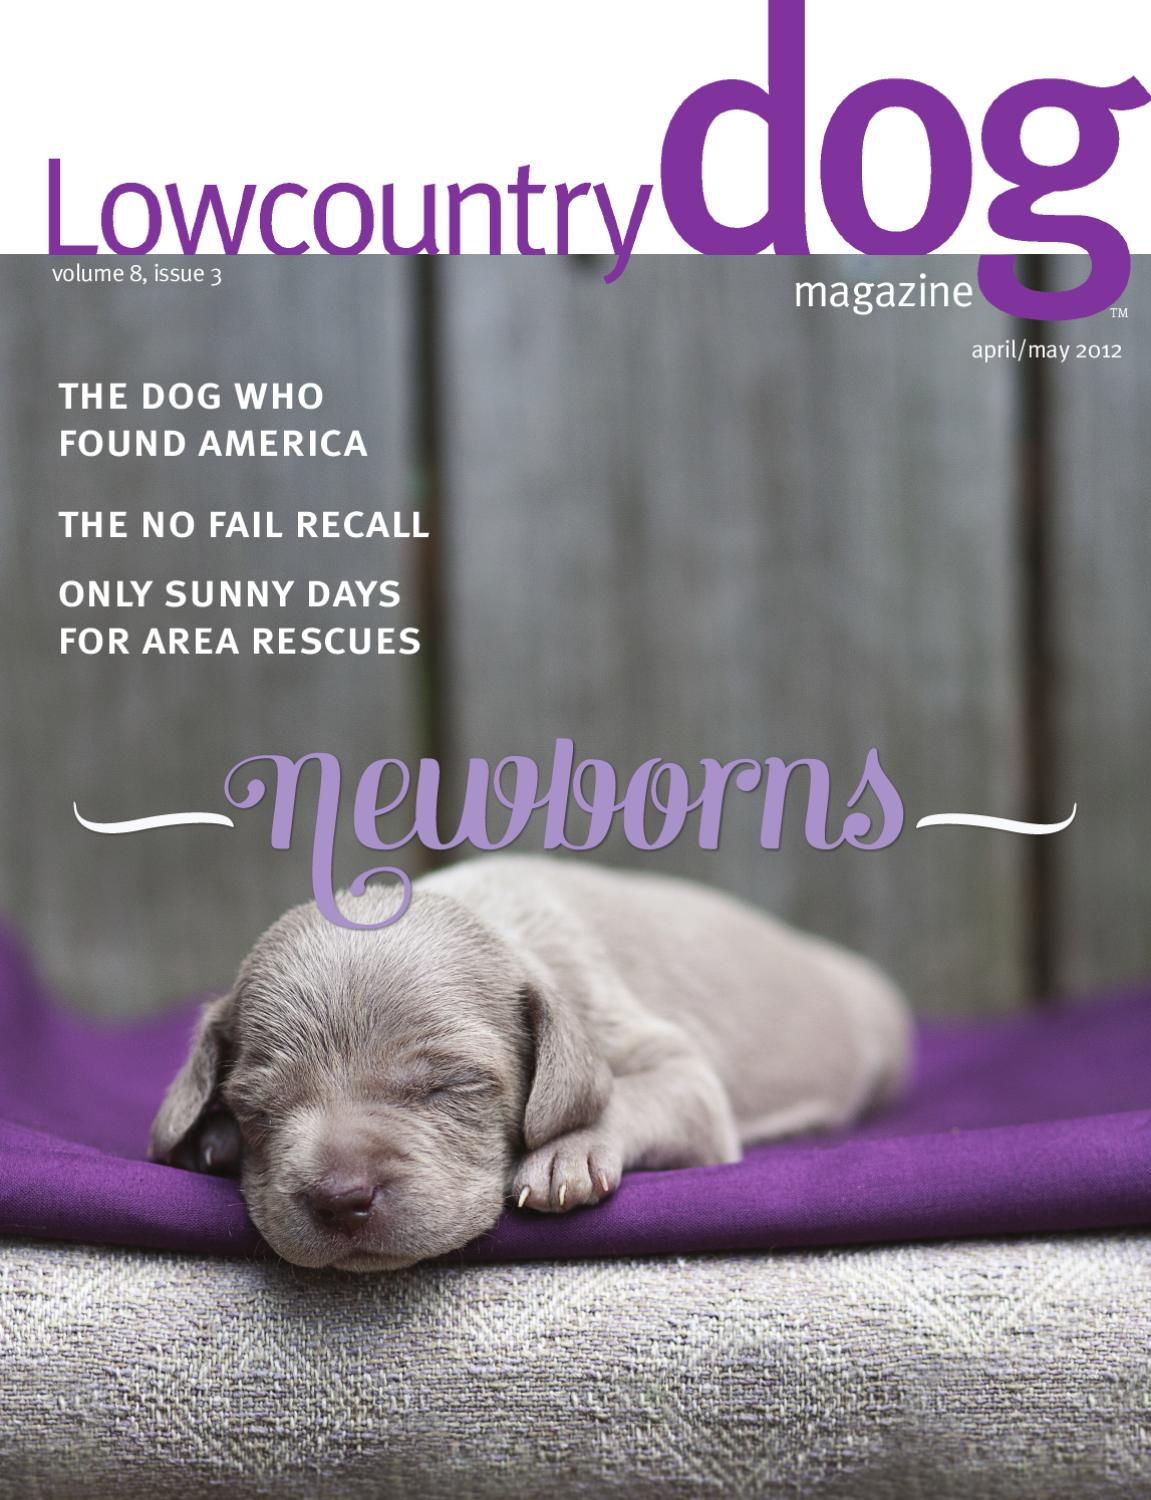 Lowcountry Dog Magazine April/May 2012 by Leah England - issuu